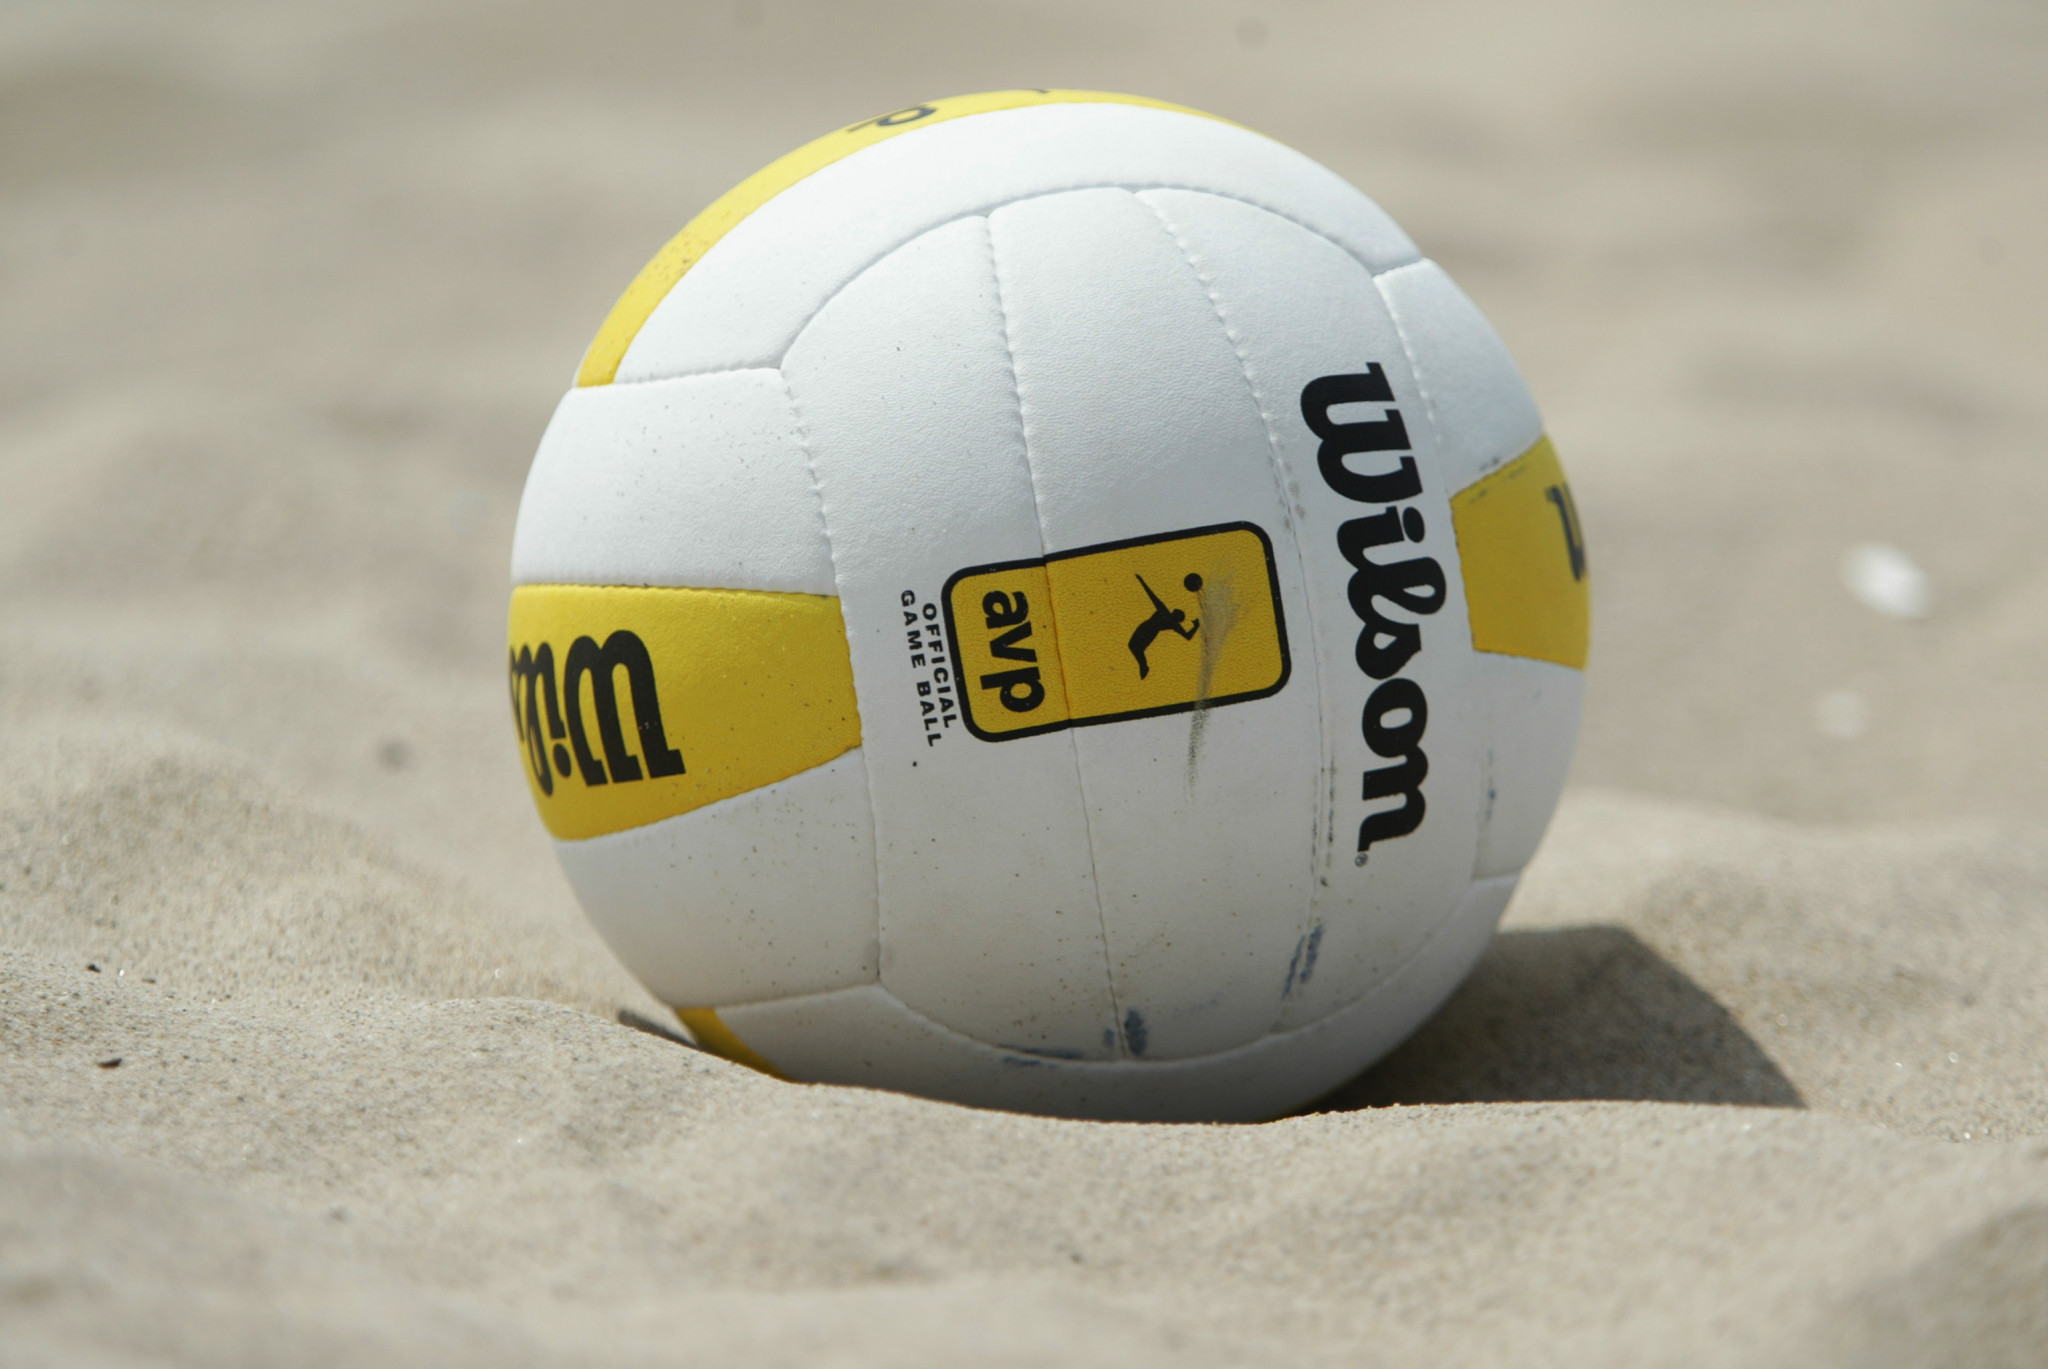 Four teams progress through qualifiers to reach main draw of Doha Beach Volleyball Cup